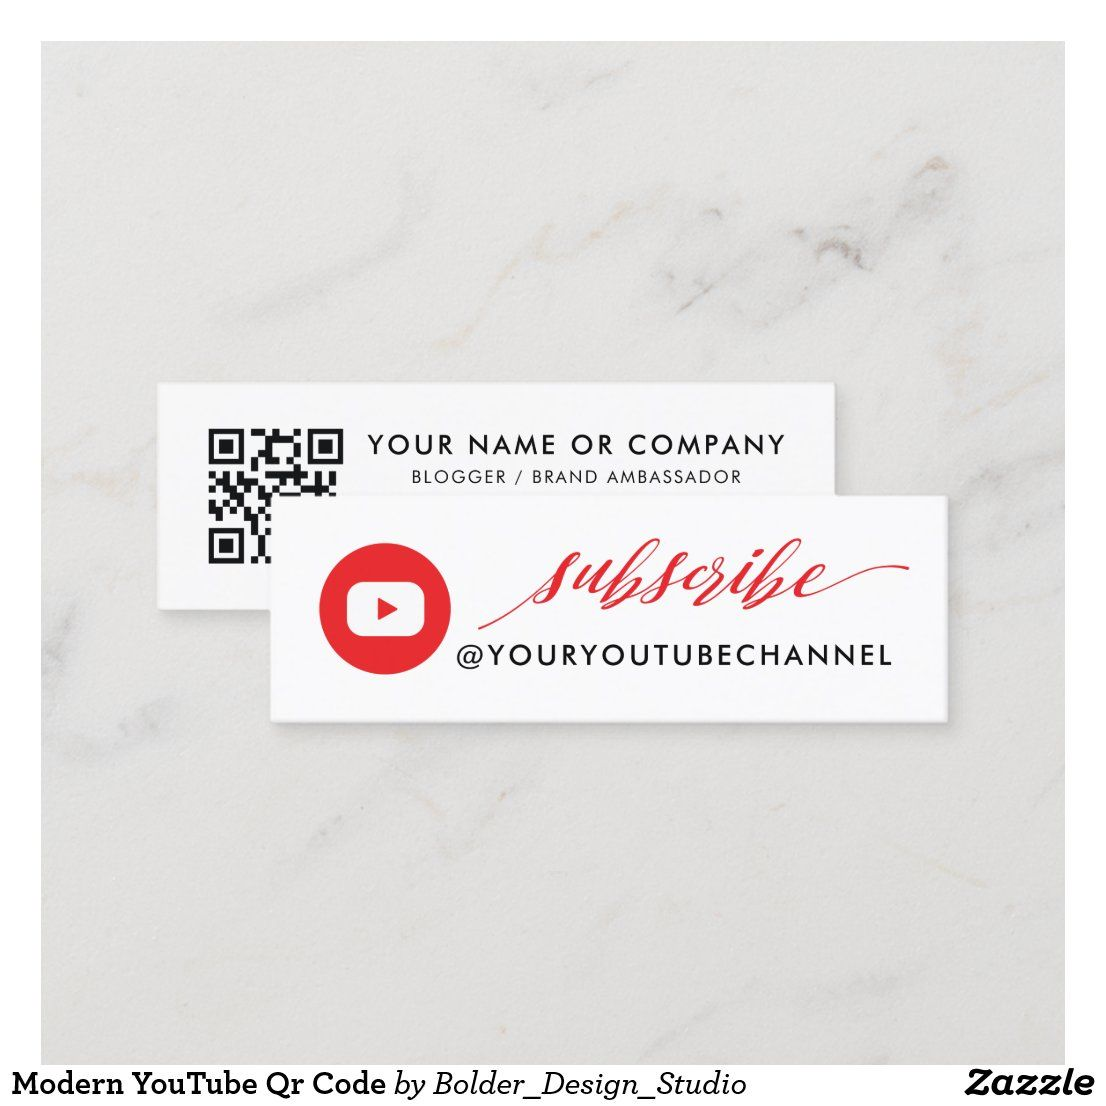 Personal Business Card With Qr Code Qr Code Business Card Personal Business Cards Personal Business Cards Design